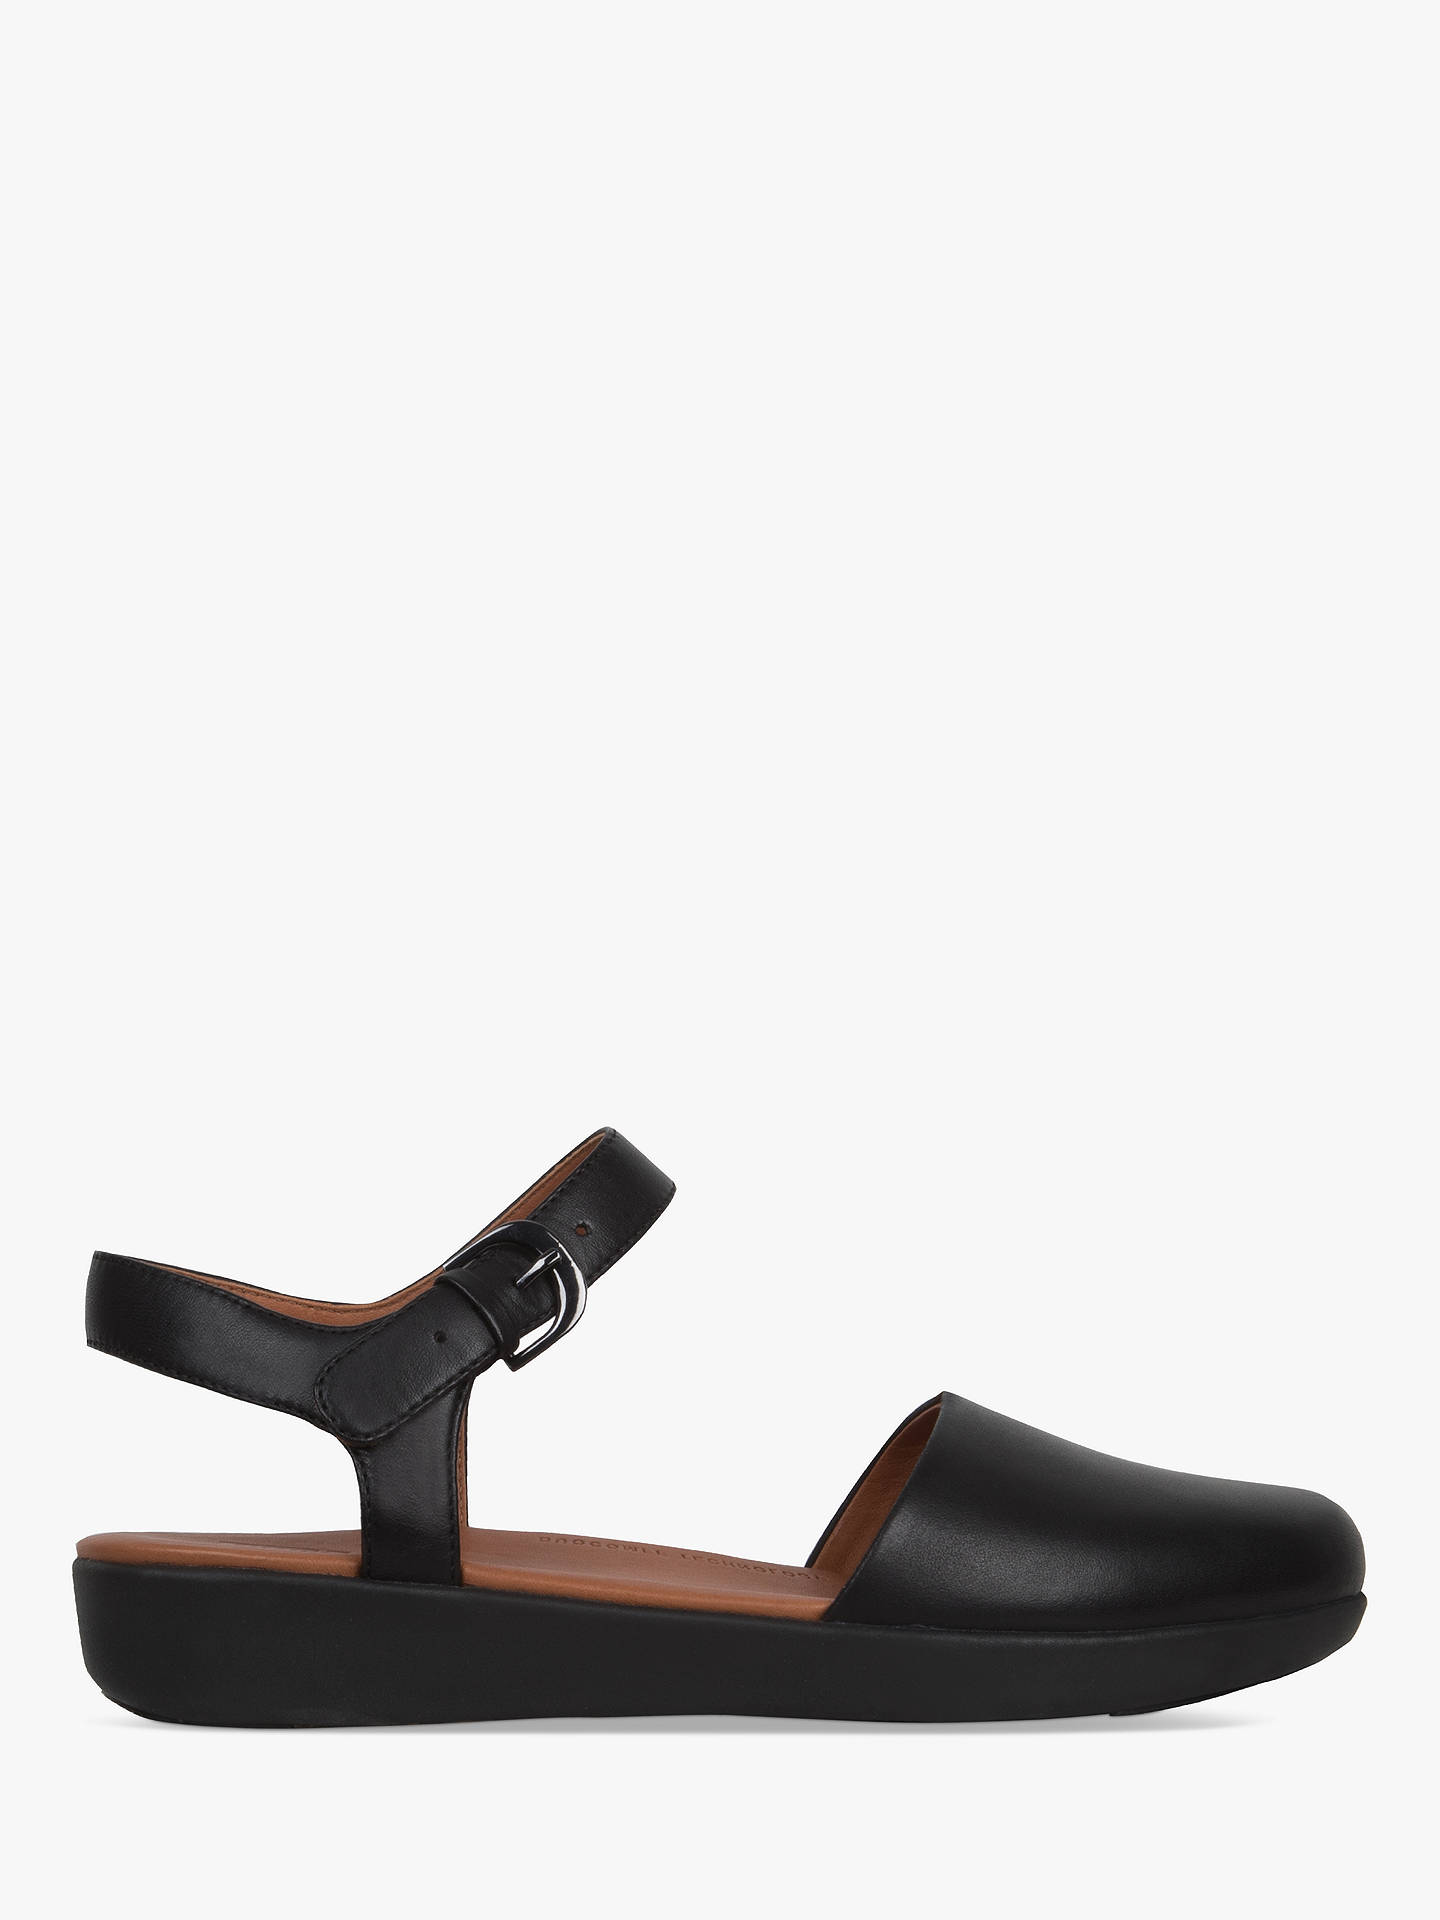 BuyFitFlop Cova Closed Toe Sandals, Black Leather, 6 Online at johnlewis.com